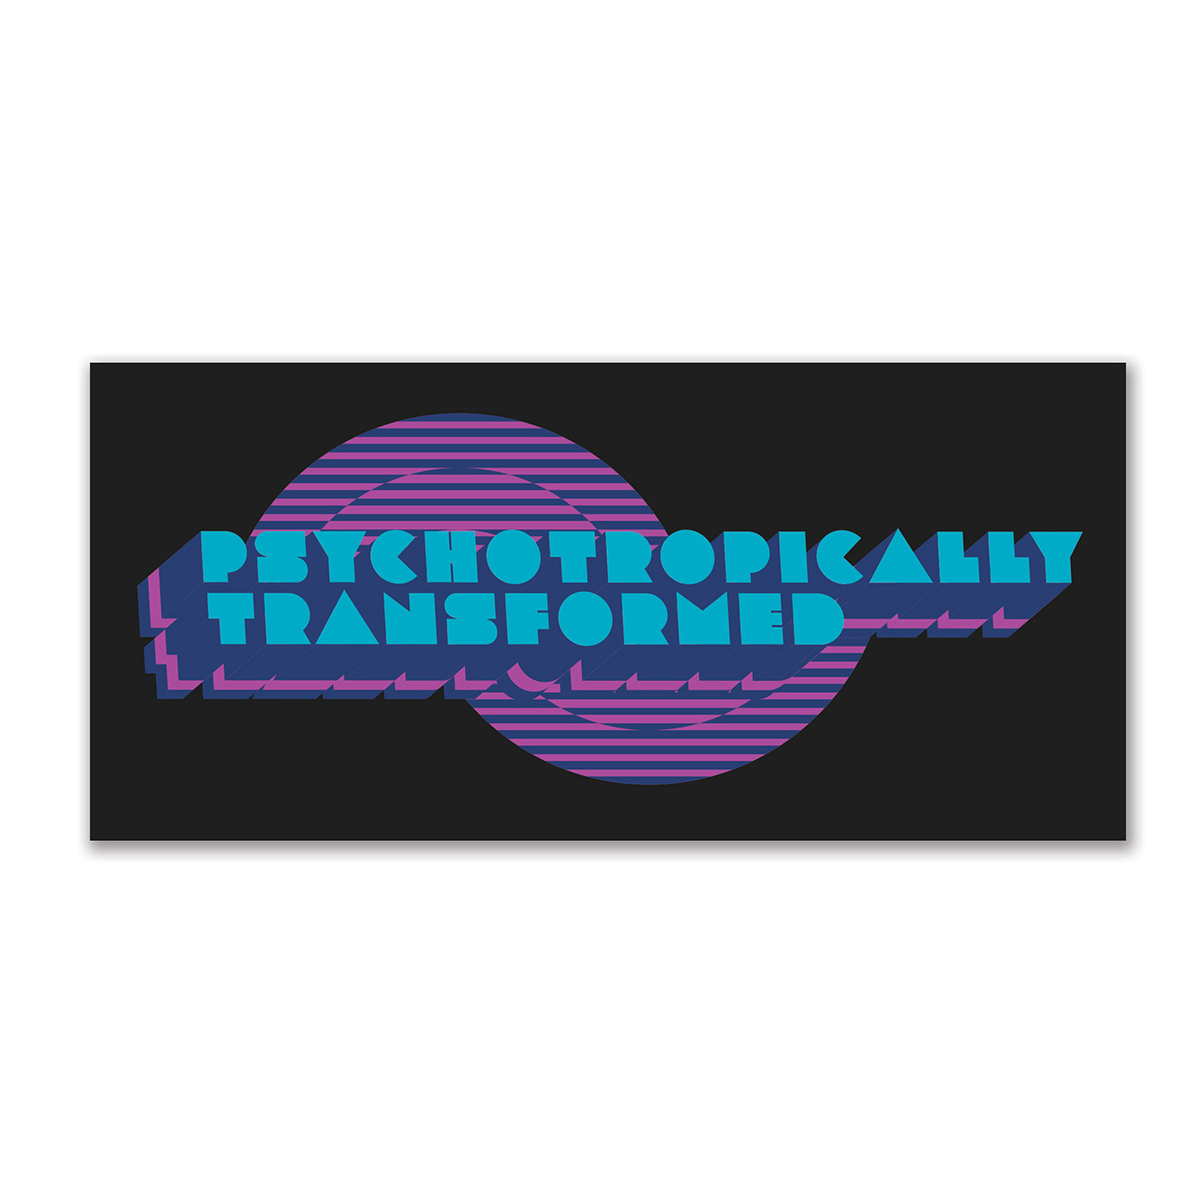 Mike Gordon Psychotropically Transformed Sticker